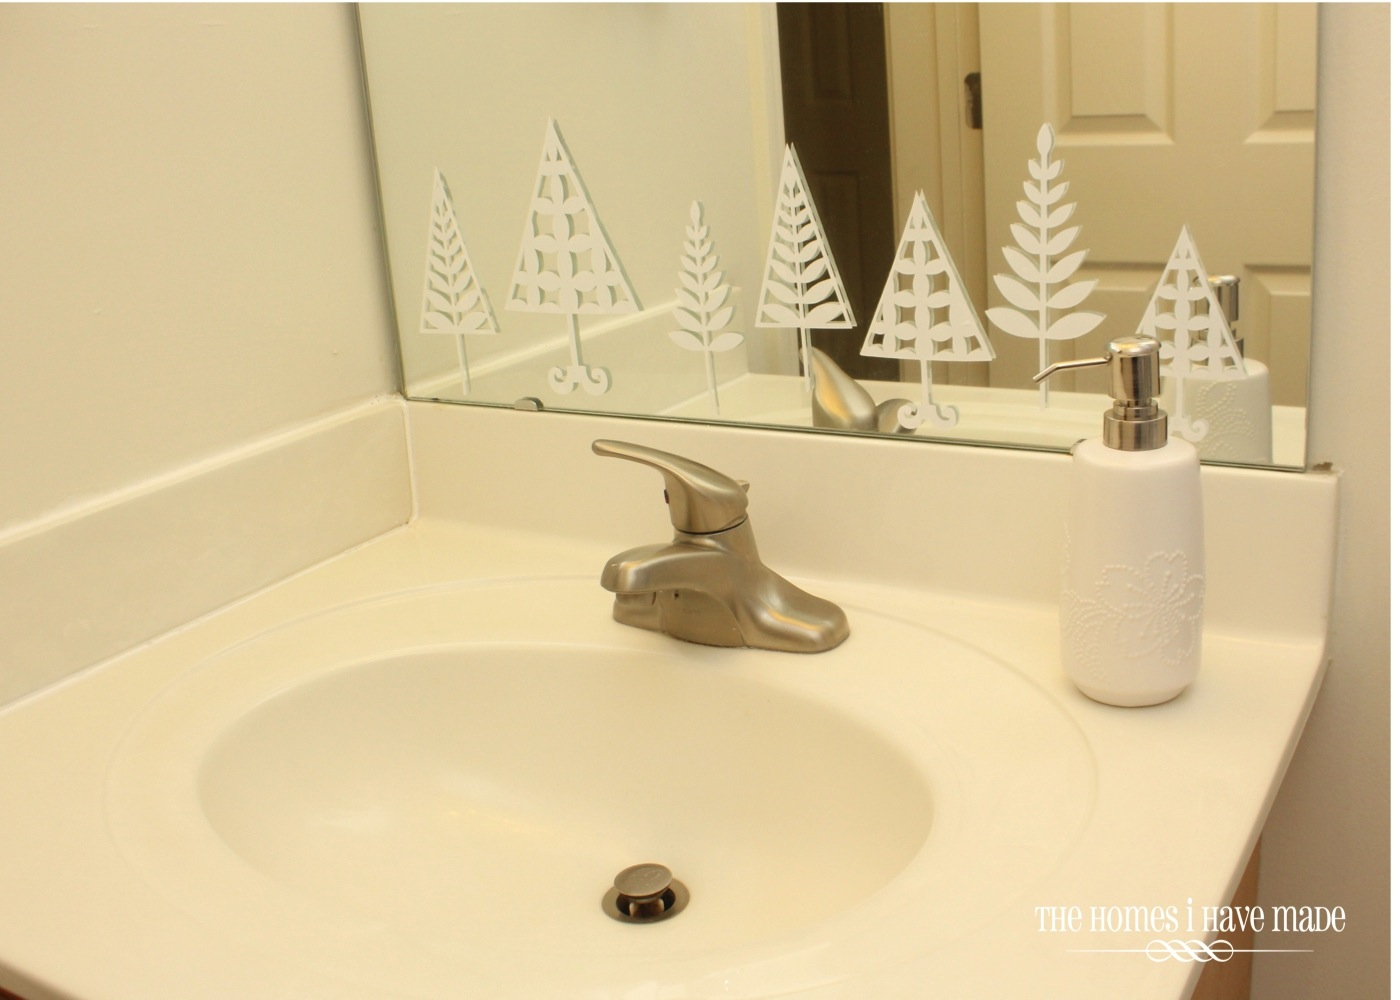 Bathroom Decor Stores Holiday Home Tour North Pole Themed Bathroom The Homes I Have Made